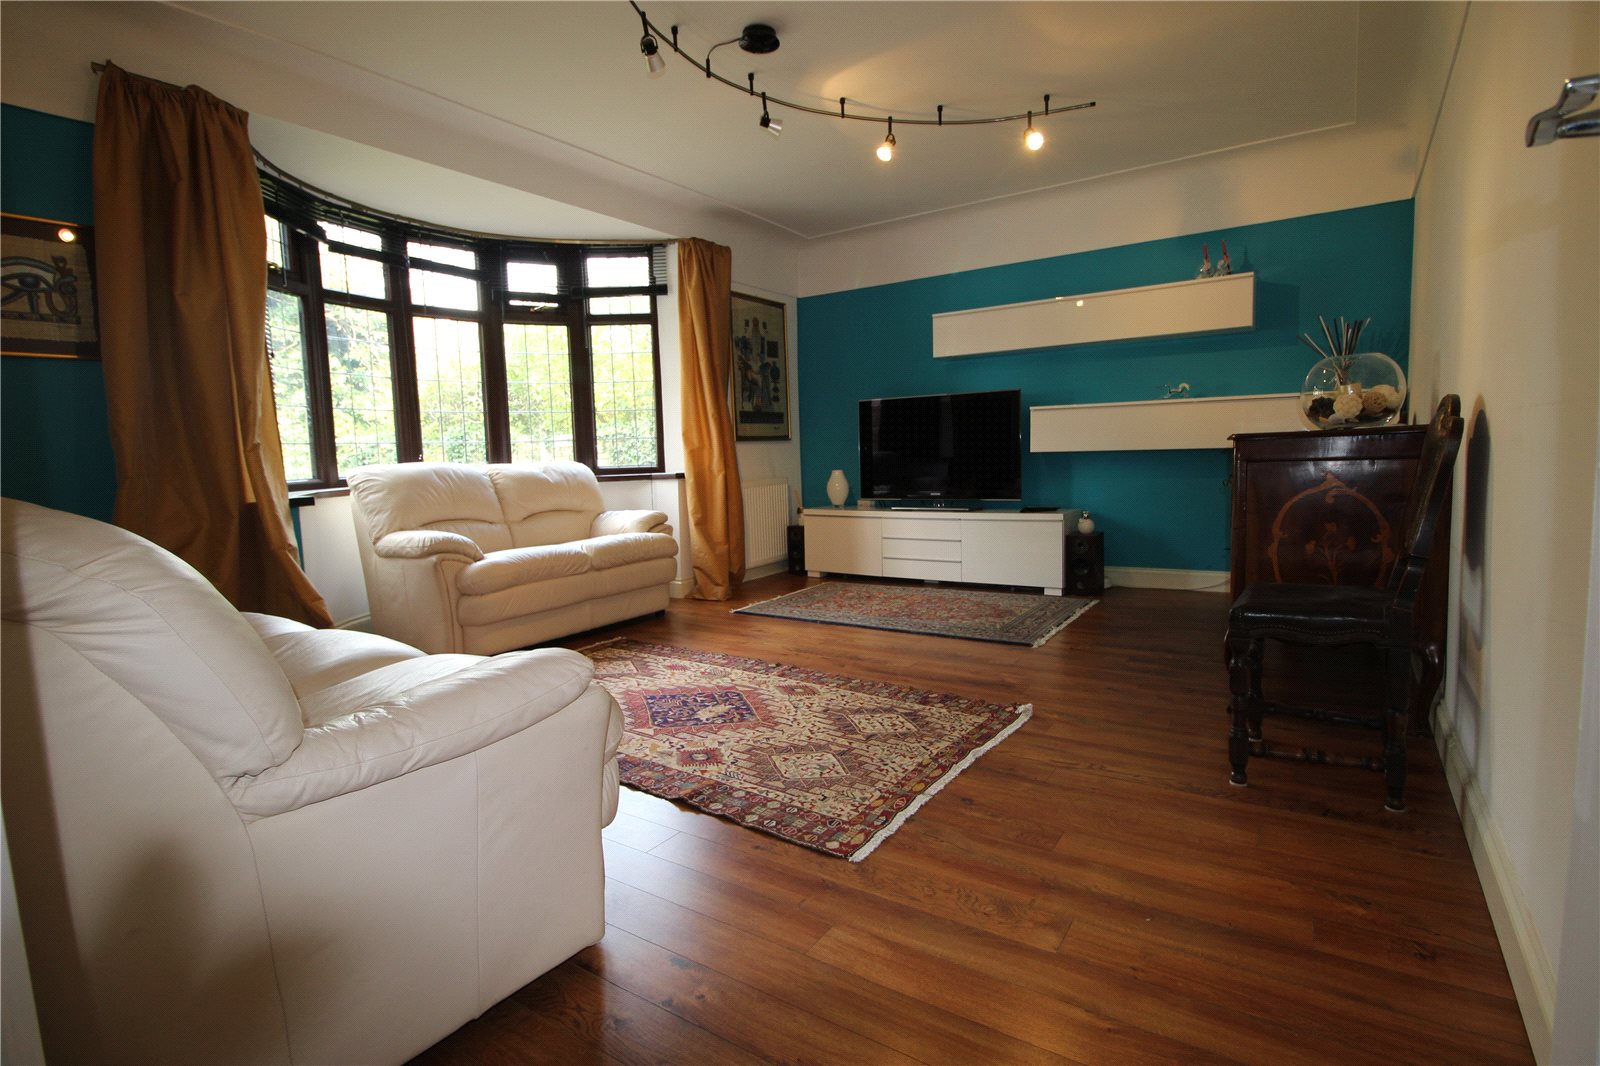 Whitegates west derby 4 bedroom house for sale in honeys for Furniture 66 long lane liverpool